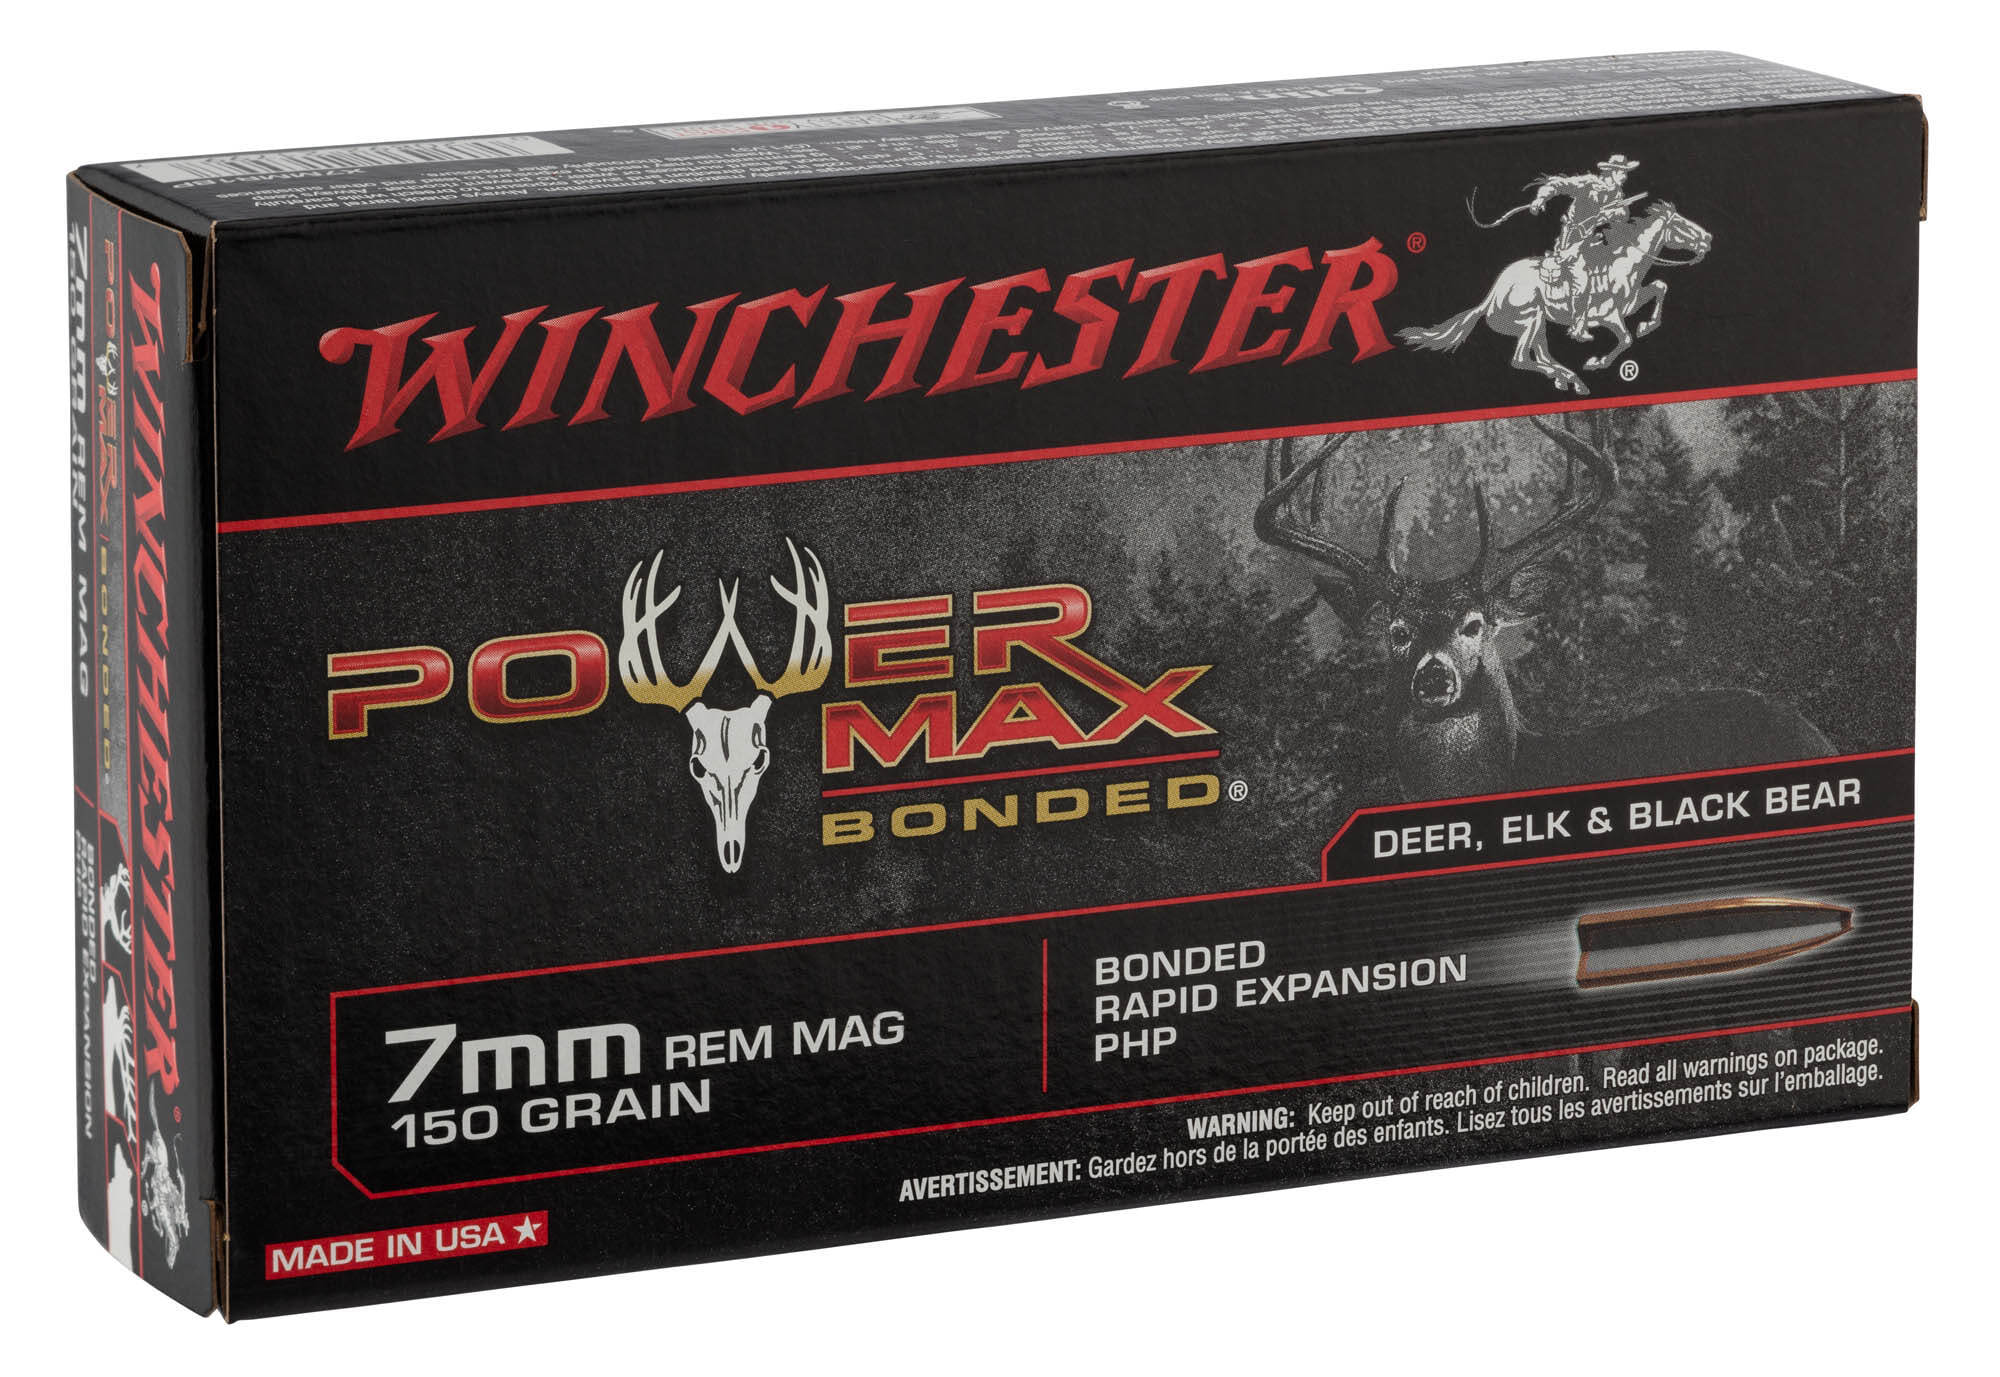 BW7001-Winchester cal. 7 mm Rem Mag - BW7022